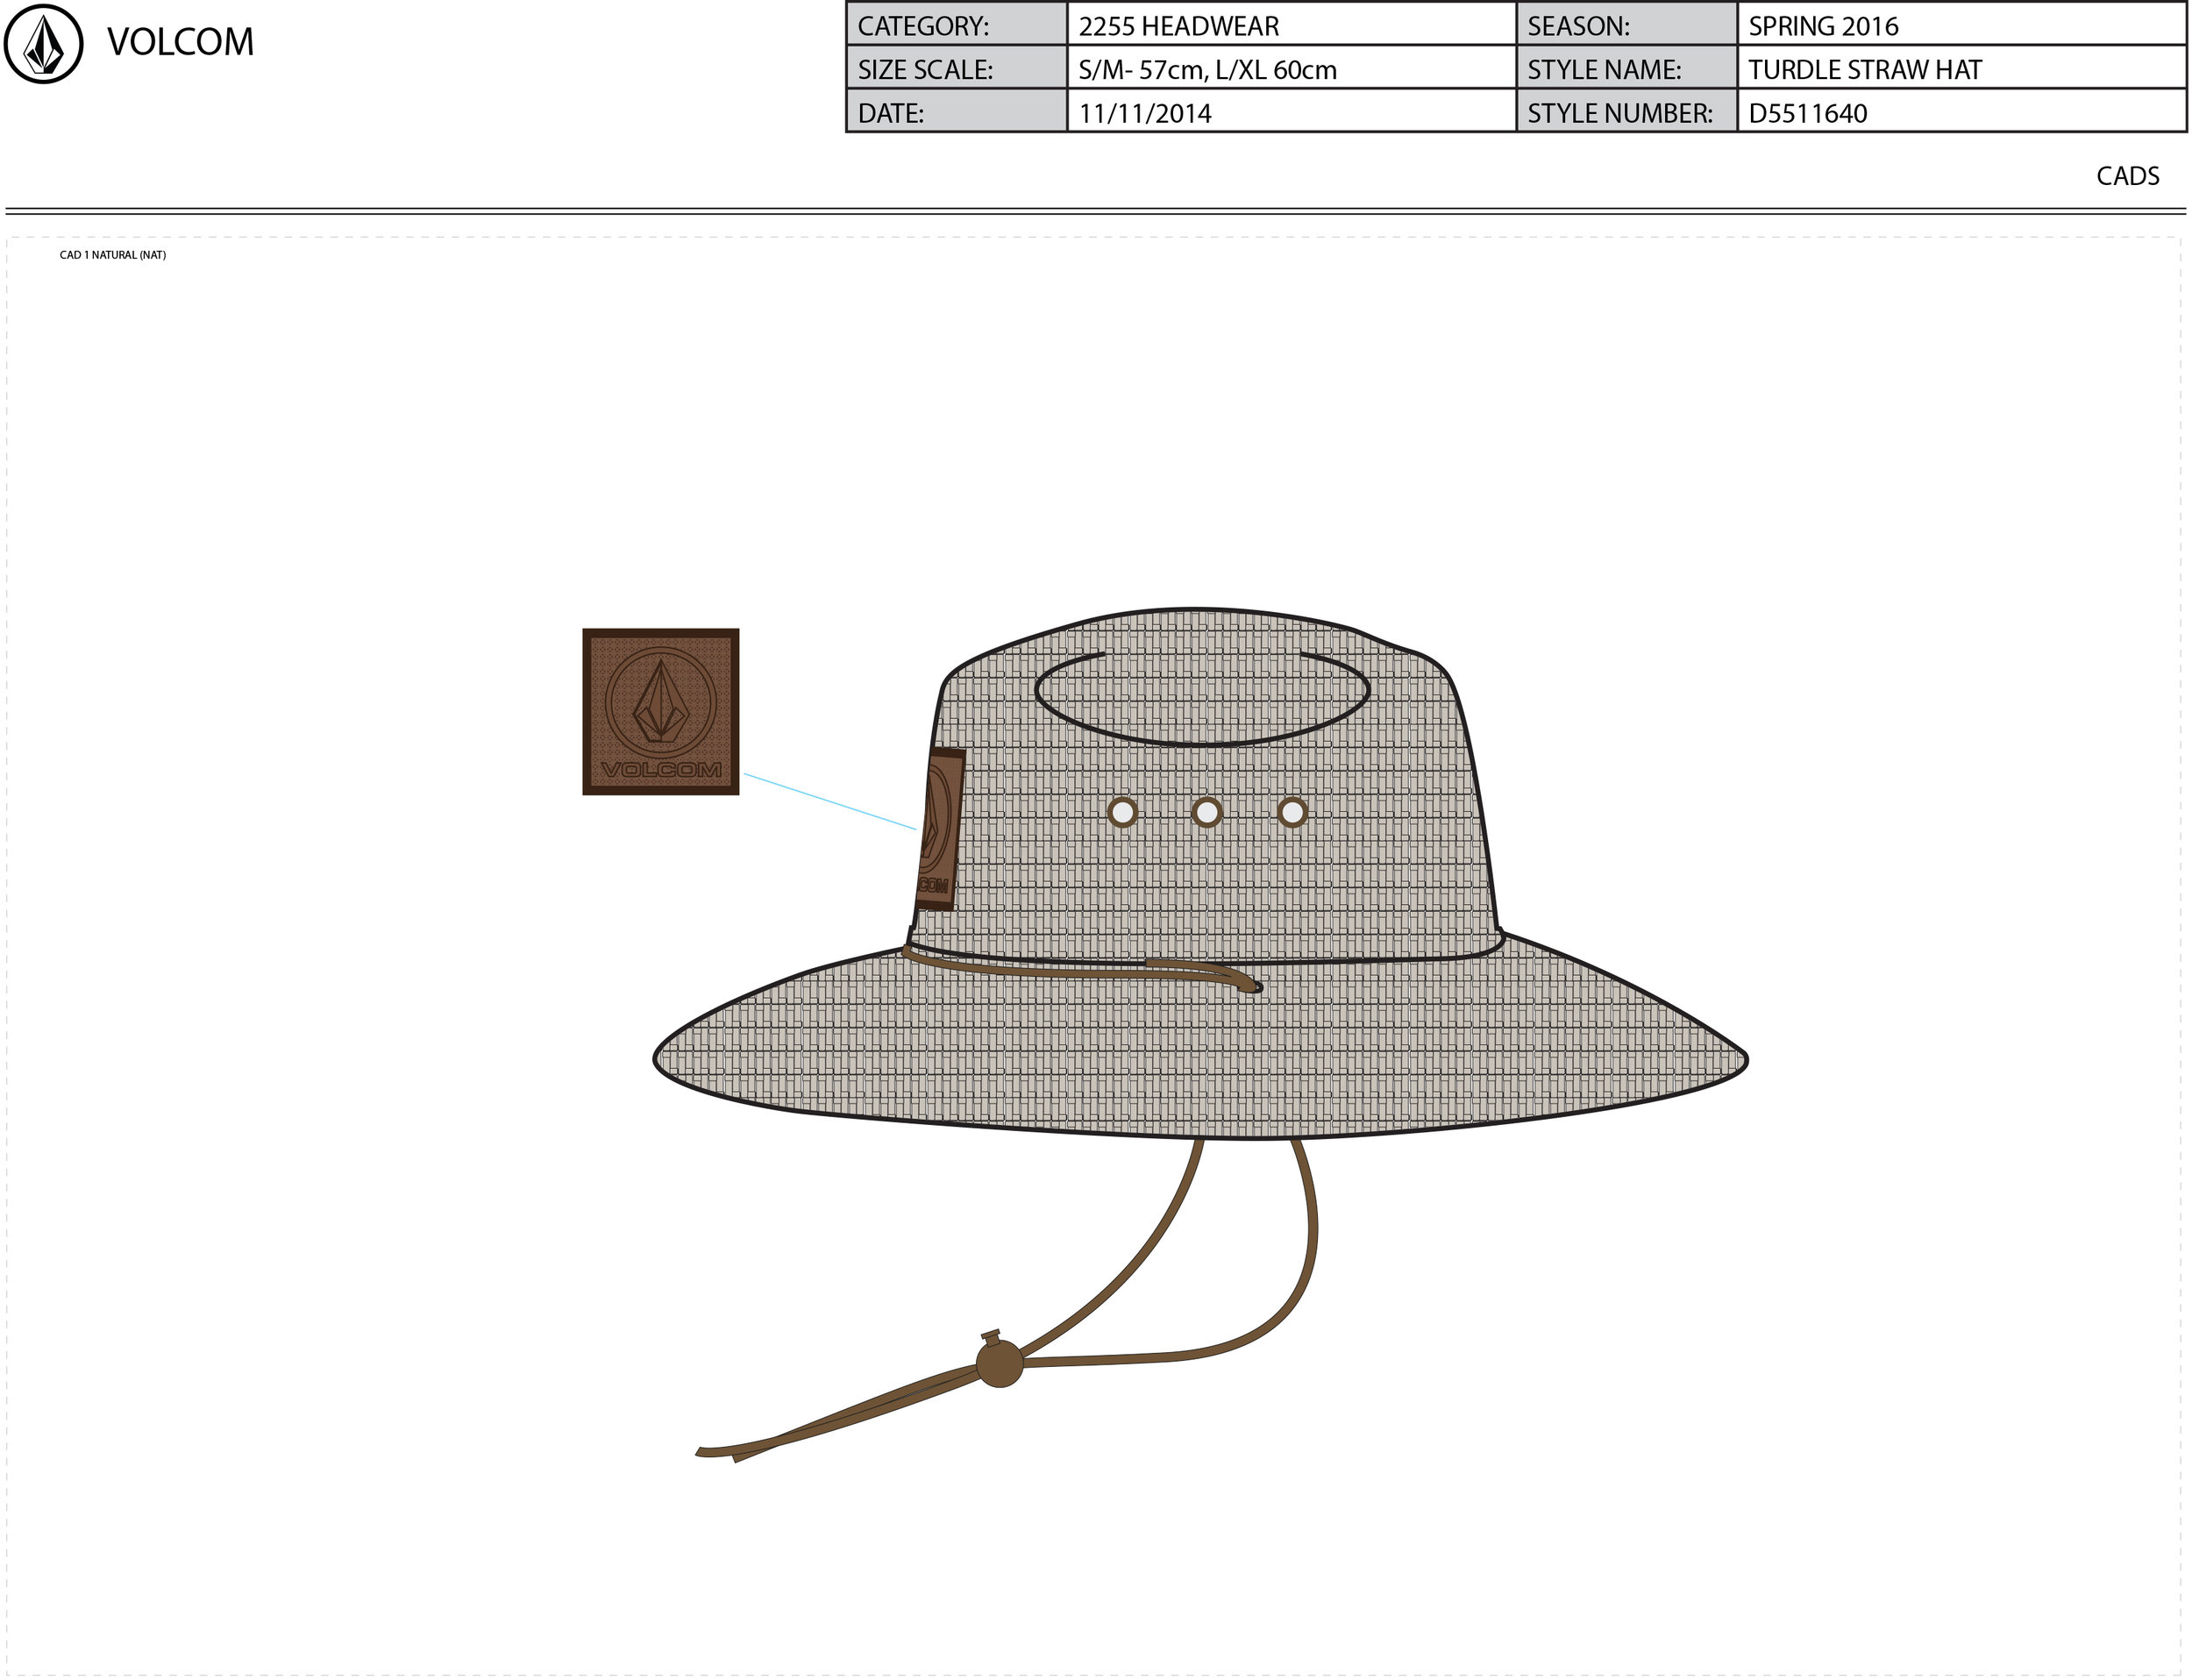 D5511640_TURDLE_STRAW_HAT-1.jpg